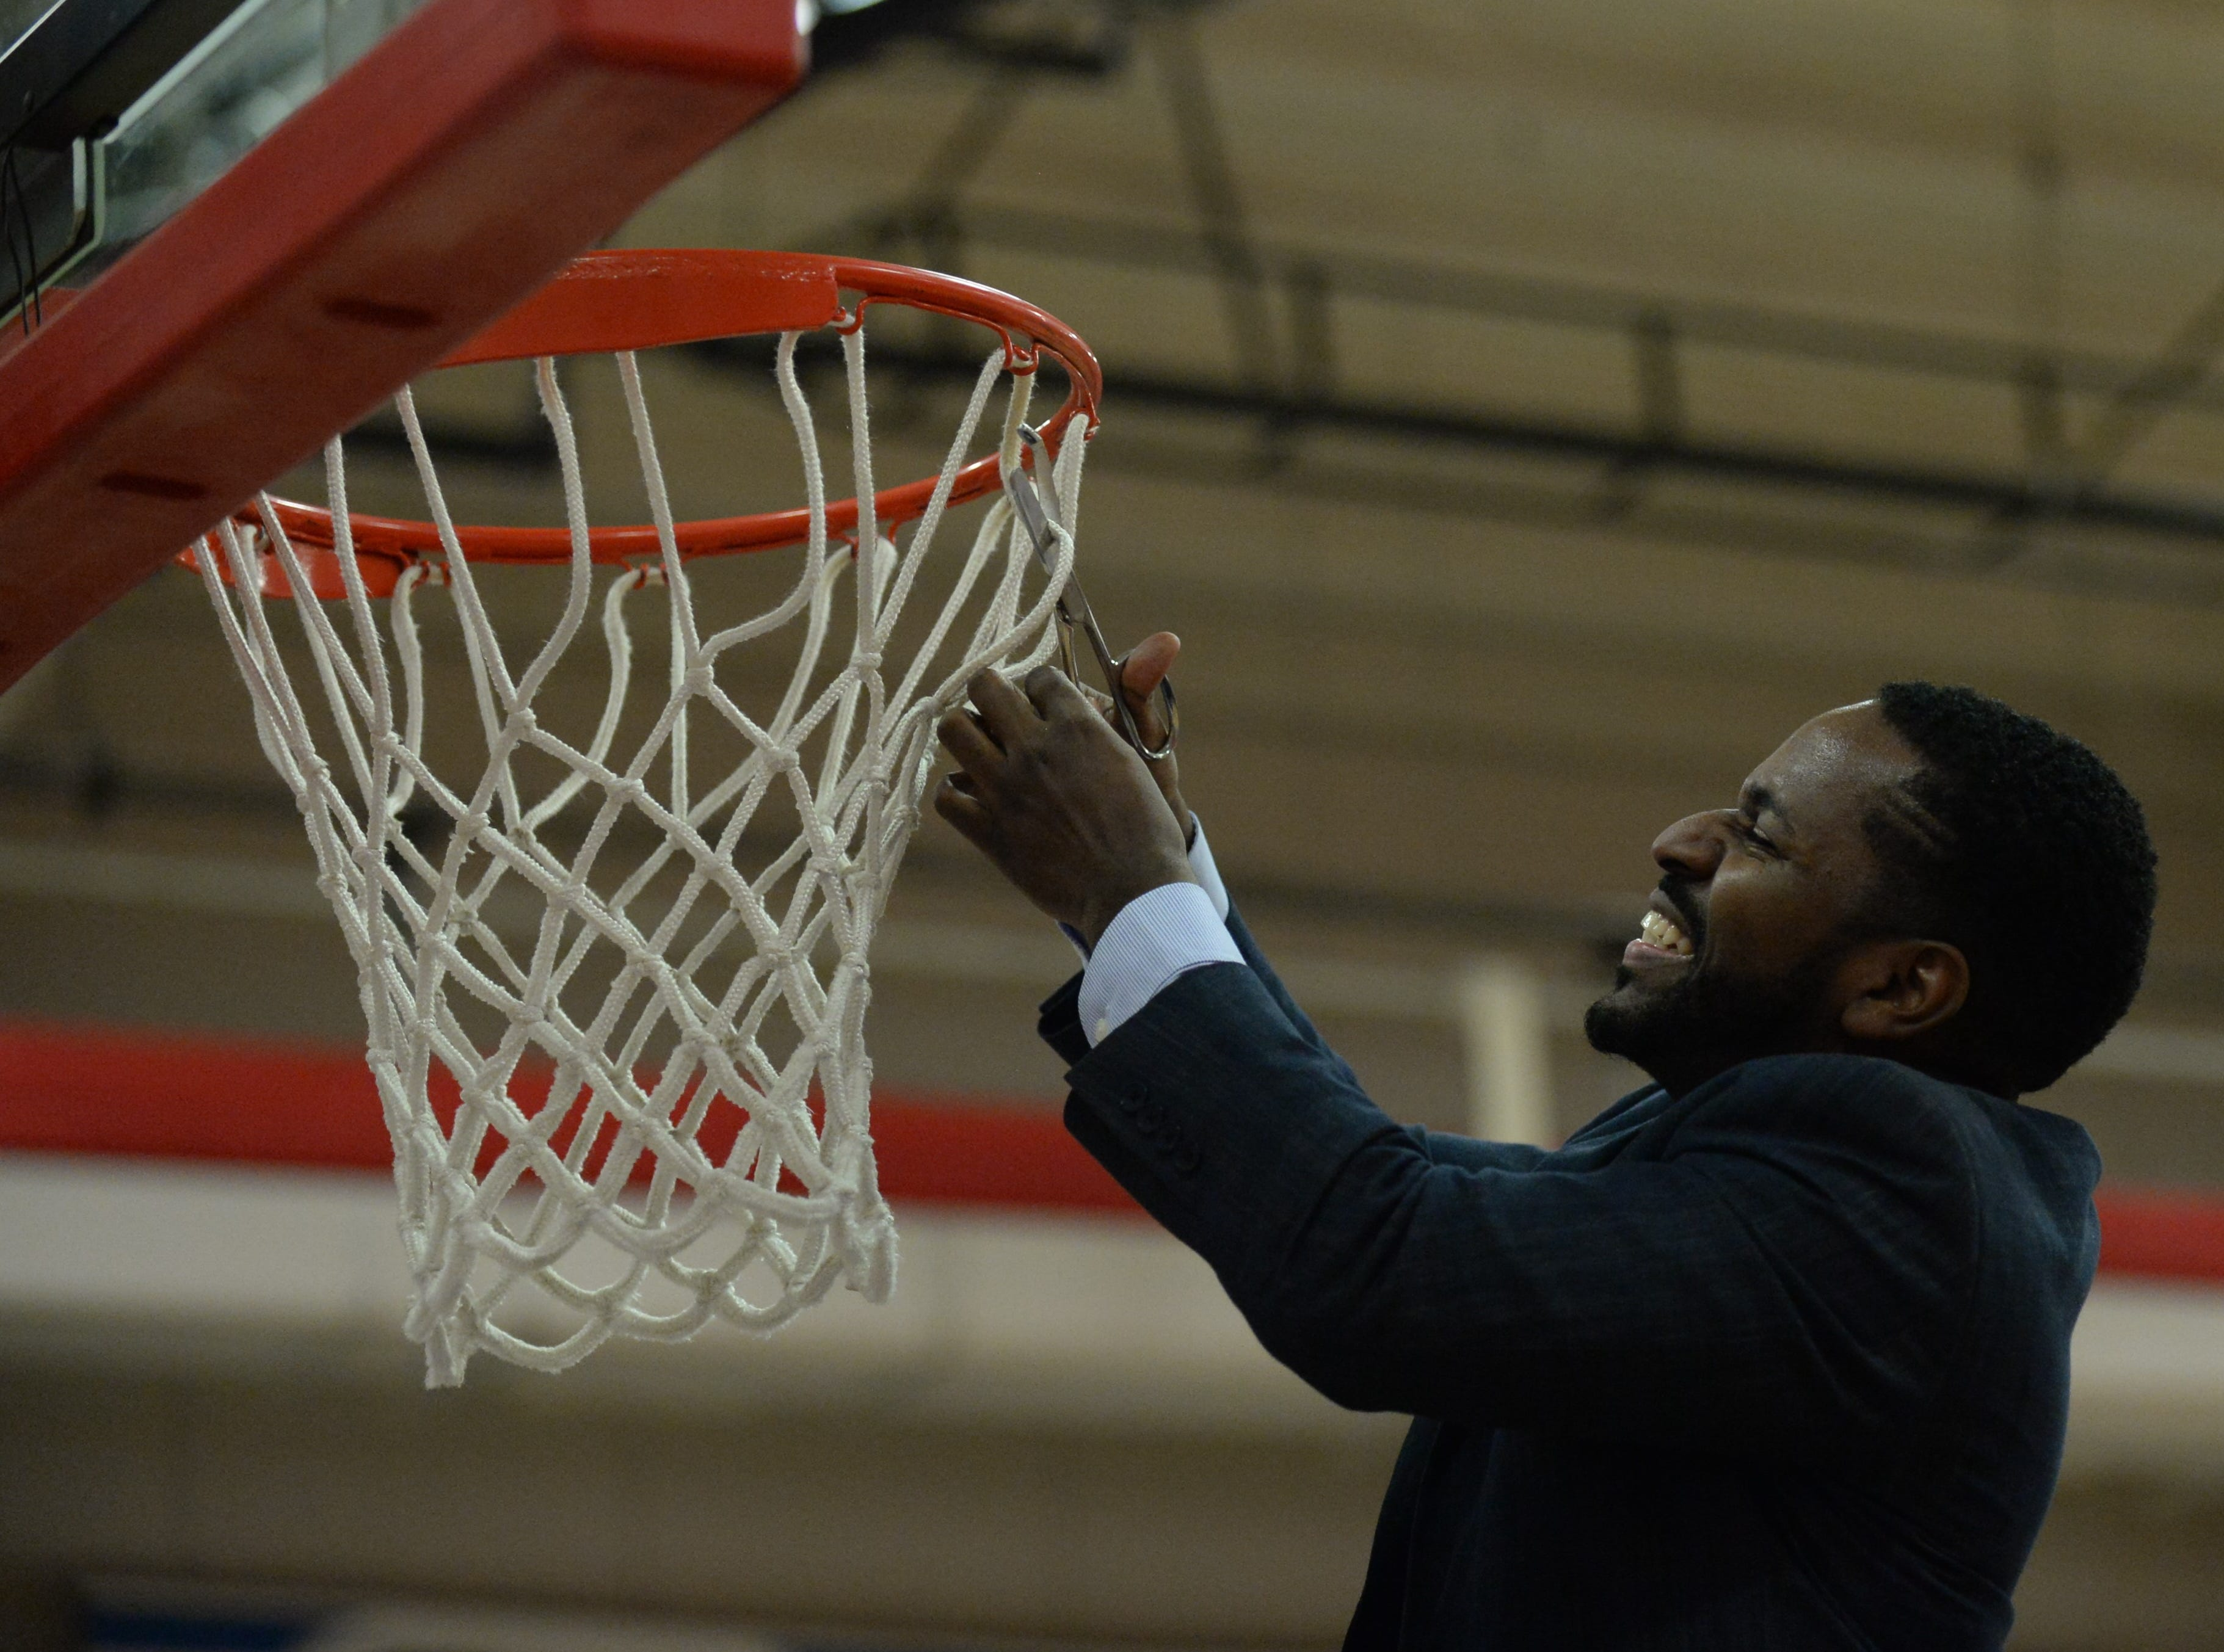 Delmarva Christian coach Jedidiah Roach cuts down the net after his team defeated Worcester Prep in the ESIAC Championship game on Thursday, Feb. 21, 2019.